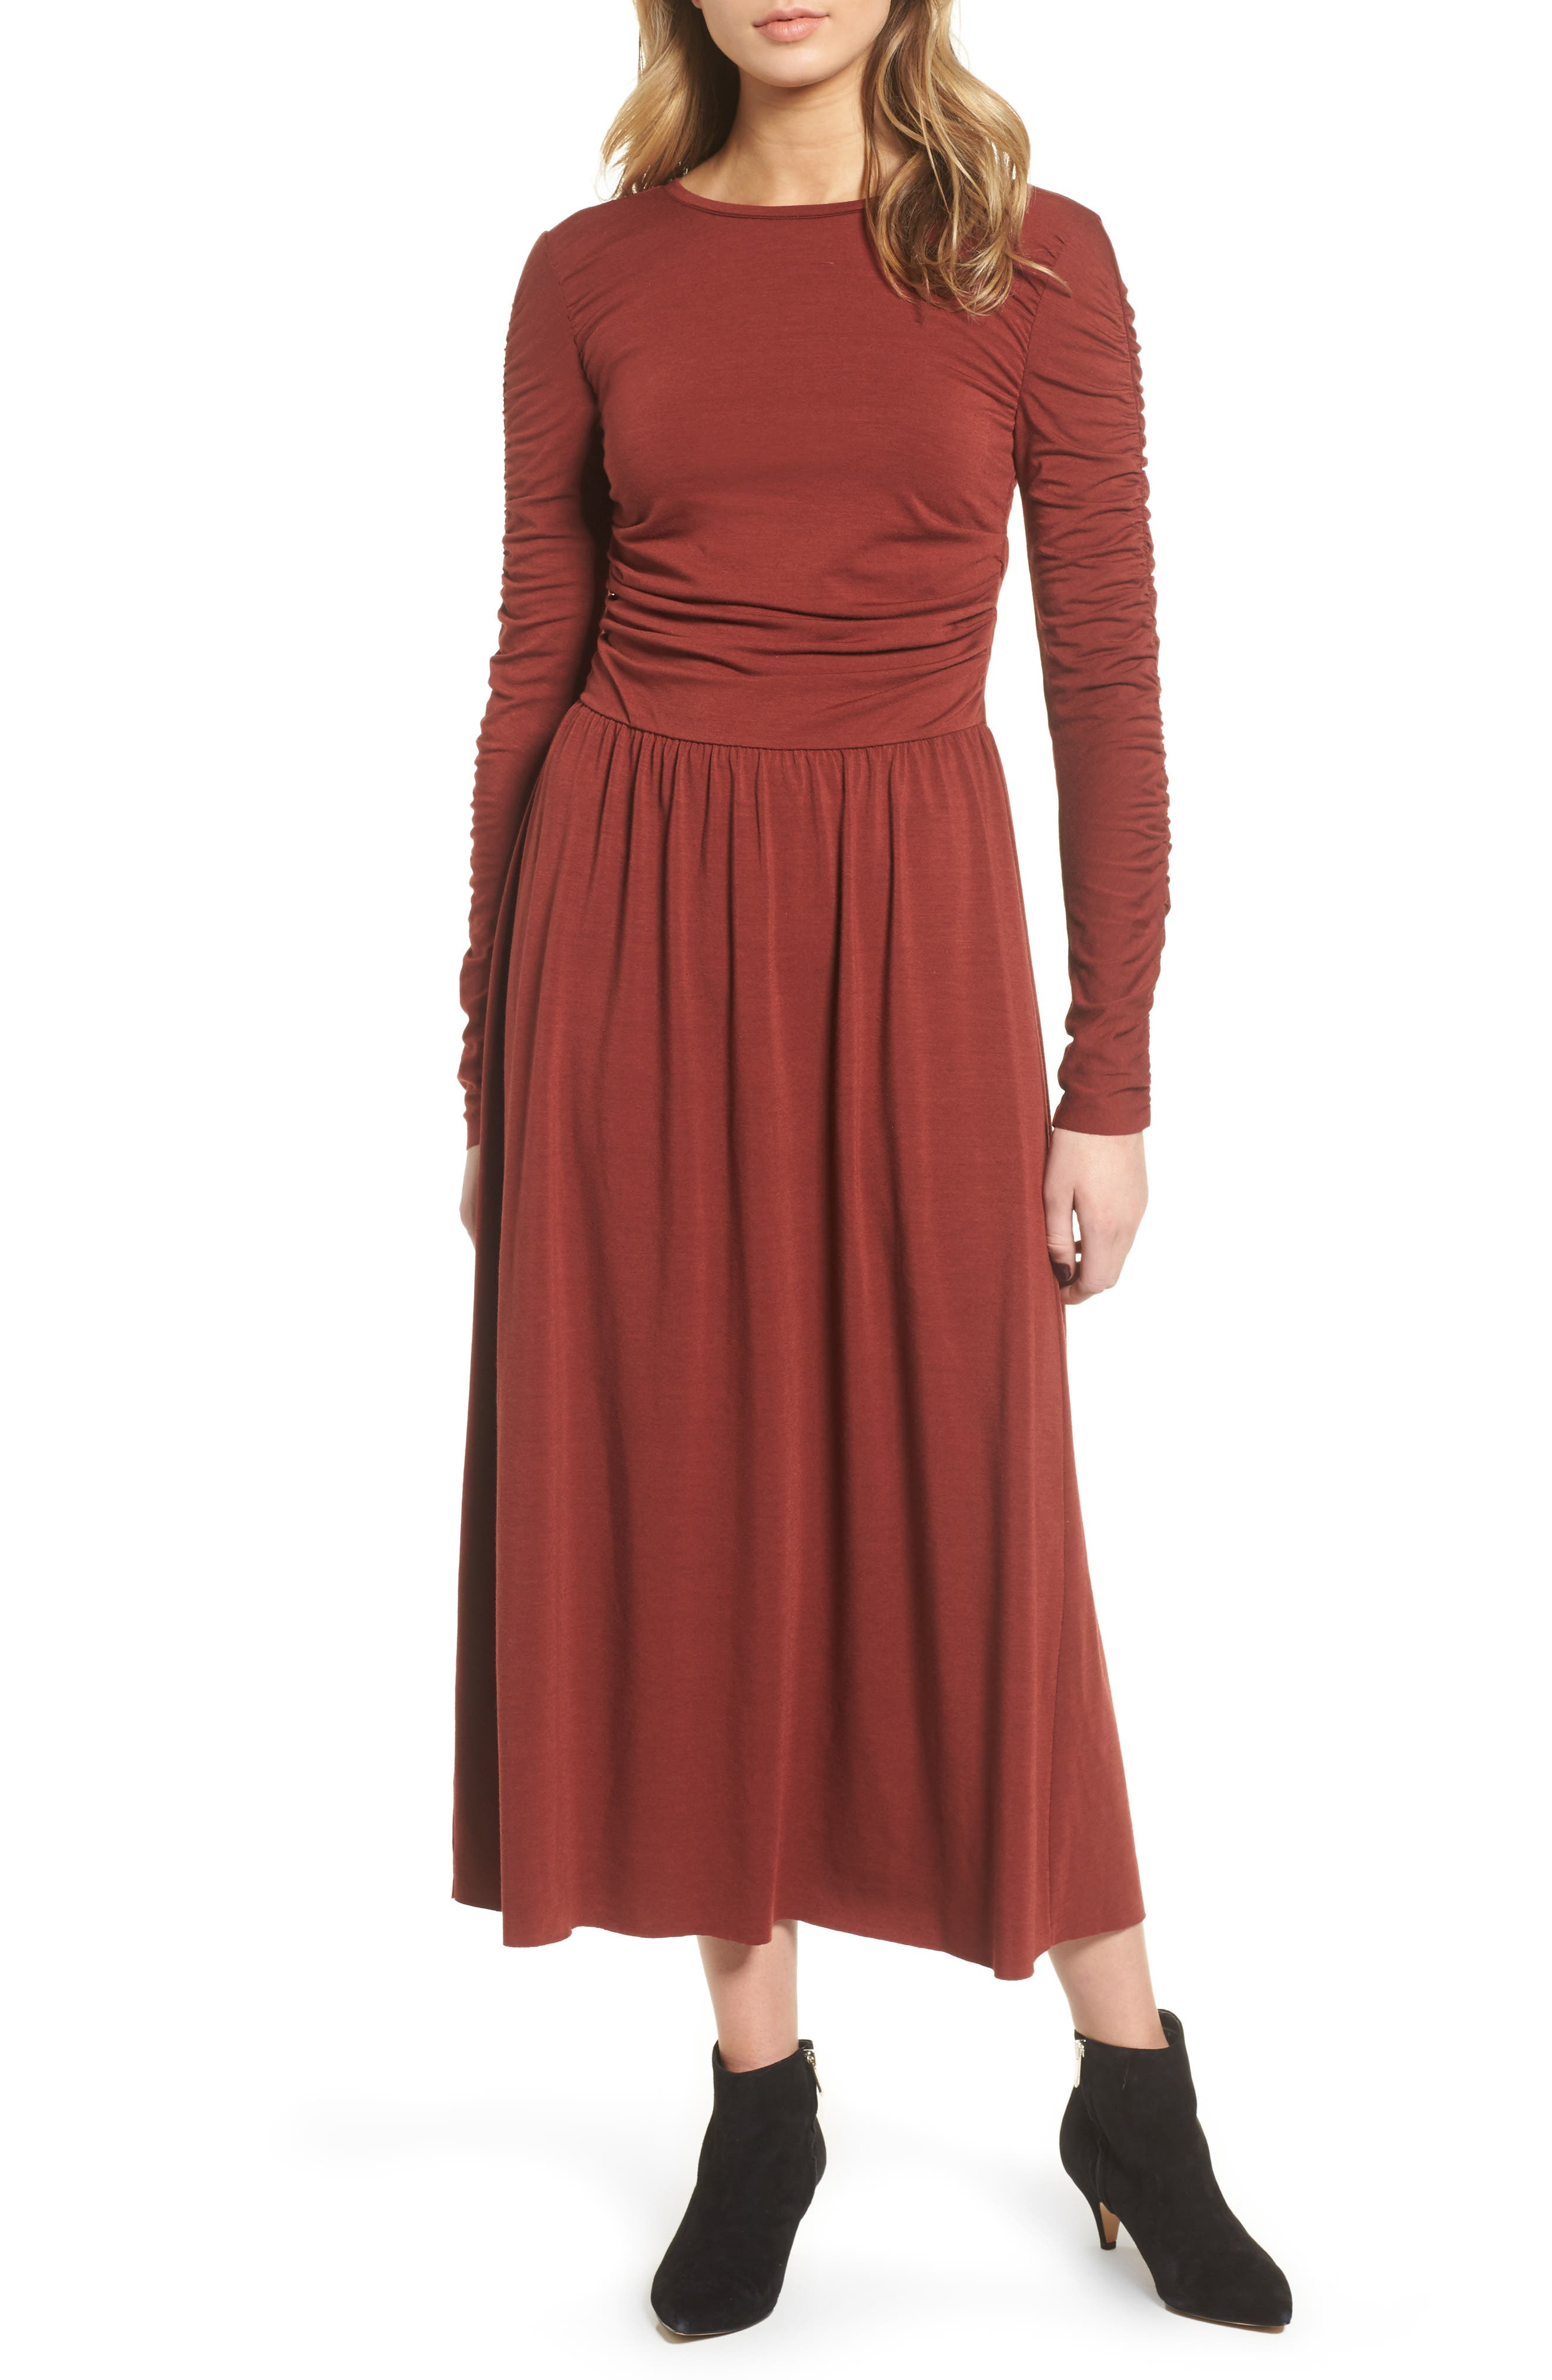 Ruched Jersey Knit Dress,                             Main thumbnail 1, color,                             200